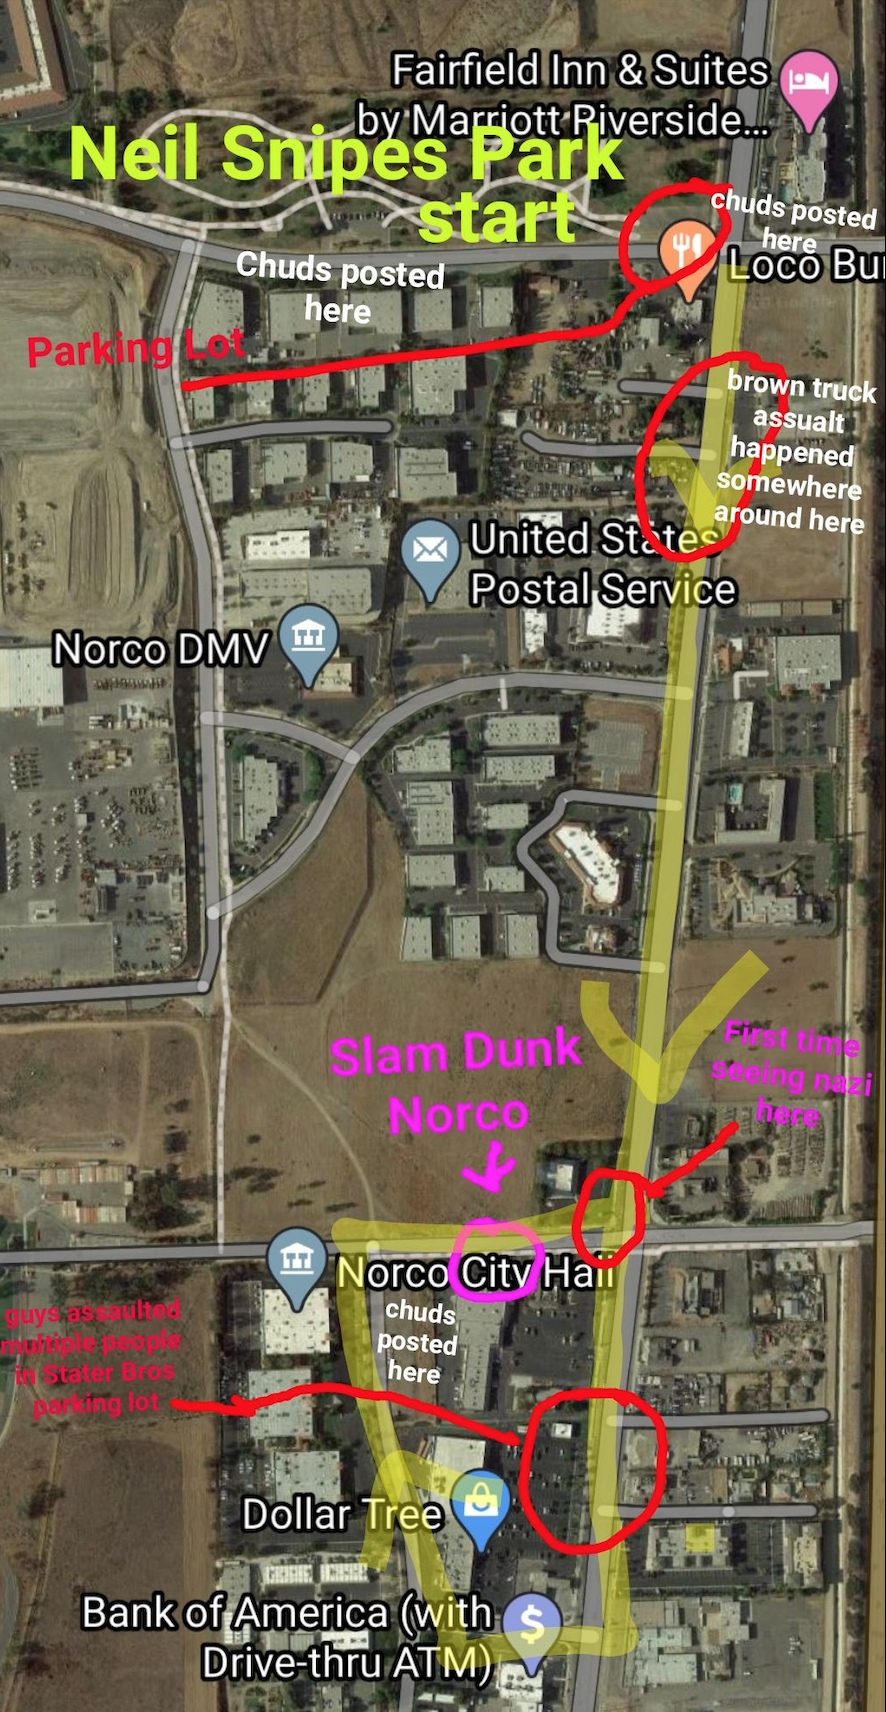 Map of the protest route drawn by 'Sam'